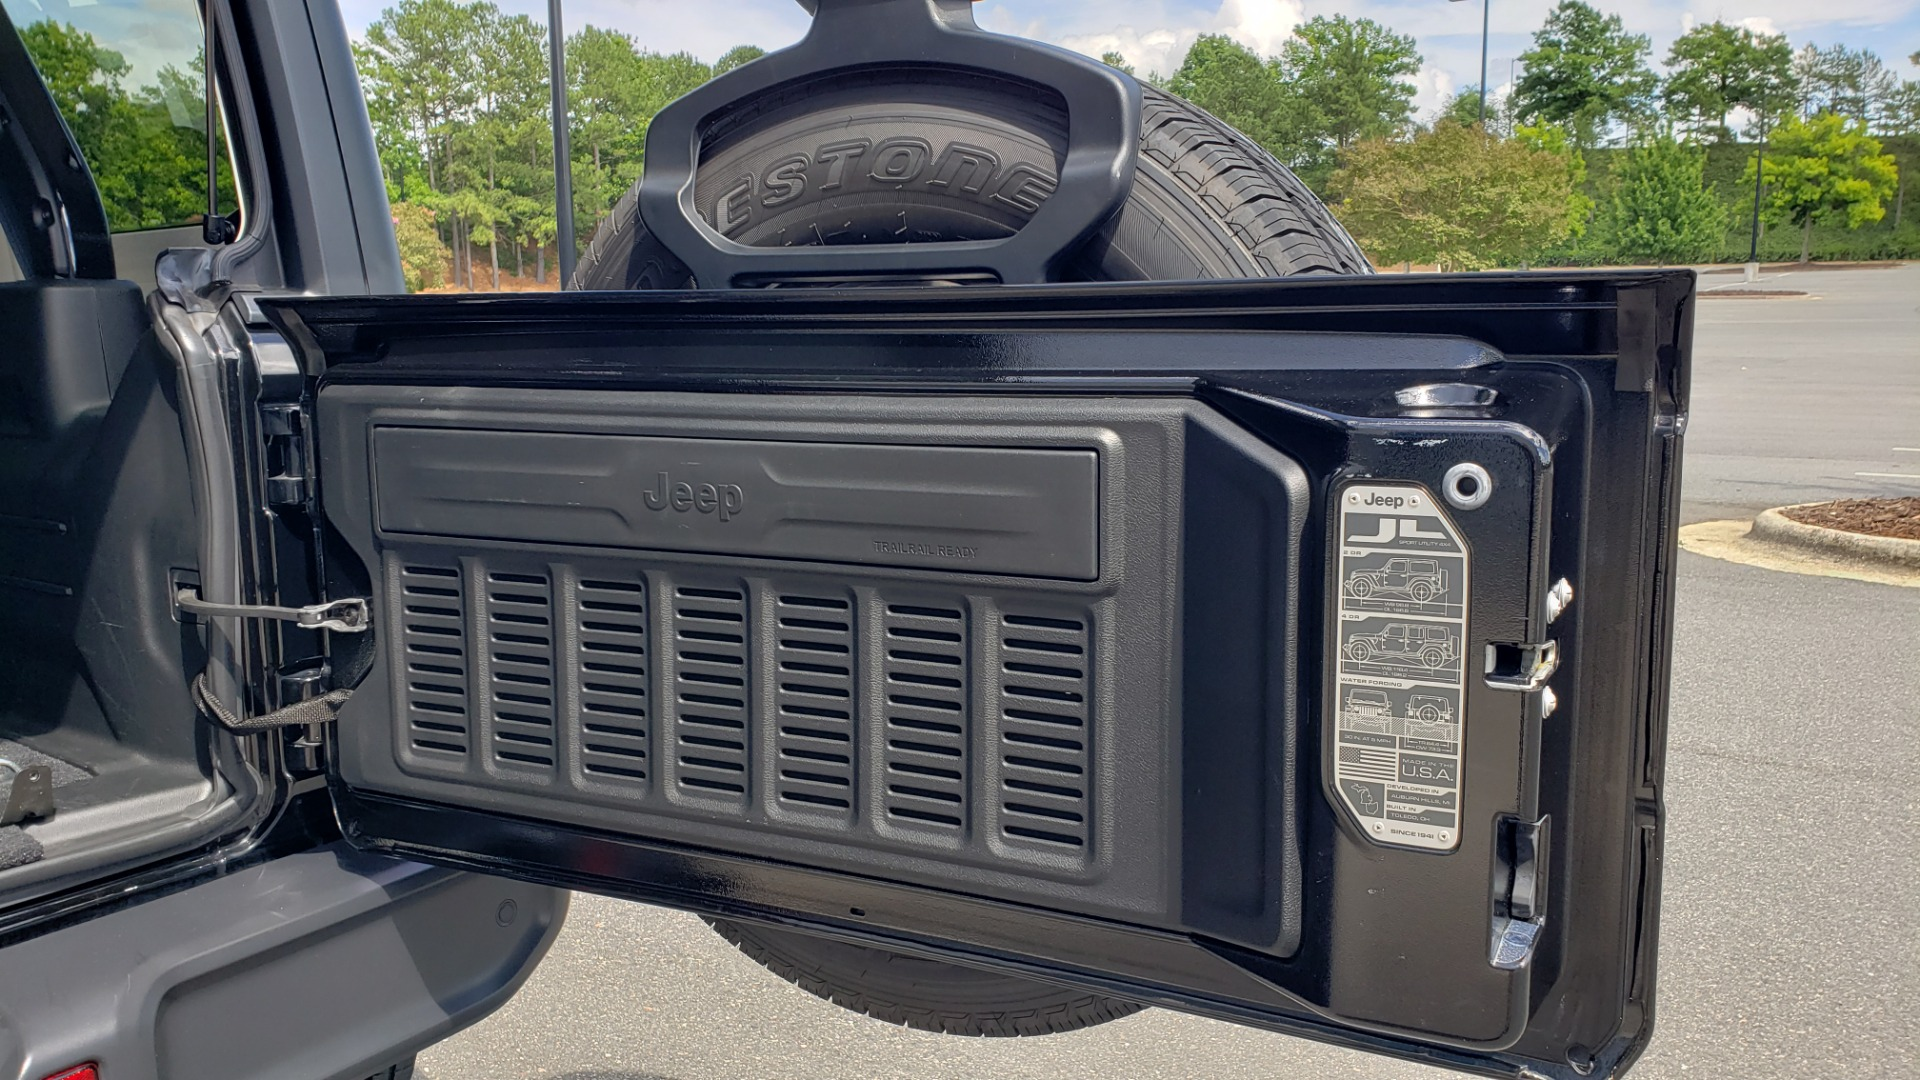 Used 2018 Jeep WRANGLER UNLIMITED SAHARA / 3.6L V6 / 6-SPD MAN / ALPINE / NAV / HTD STS / REARVIEW for sale $43,999 at Formula Imports in Charlotte NC 28227 22